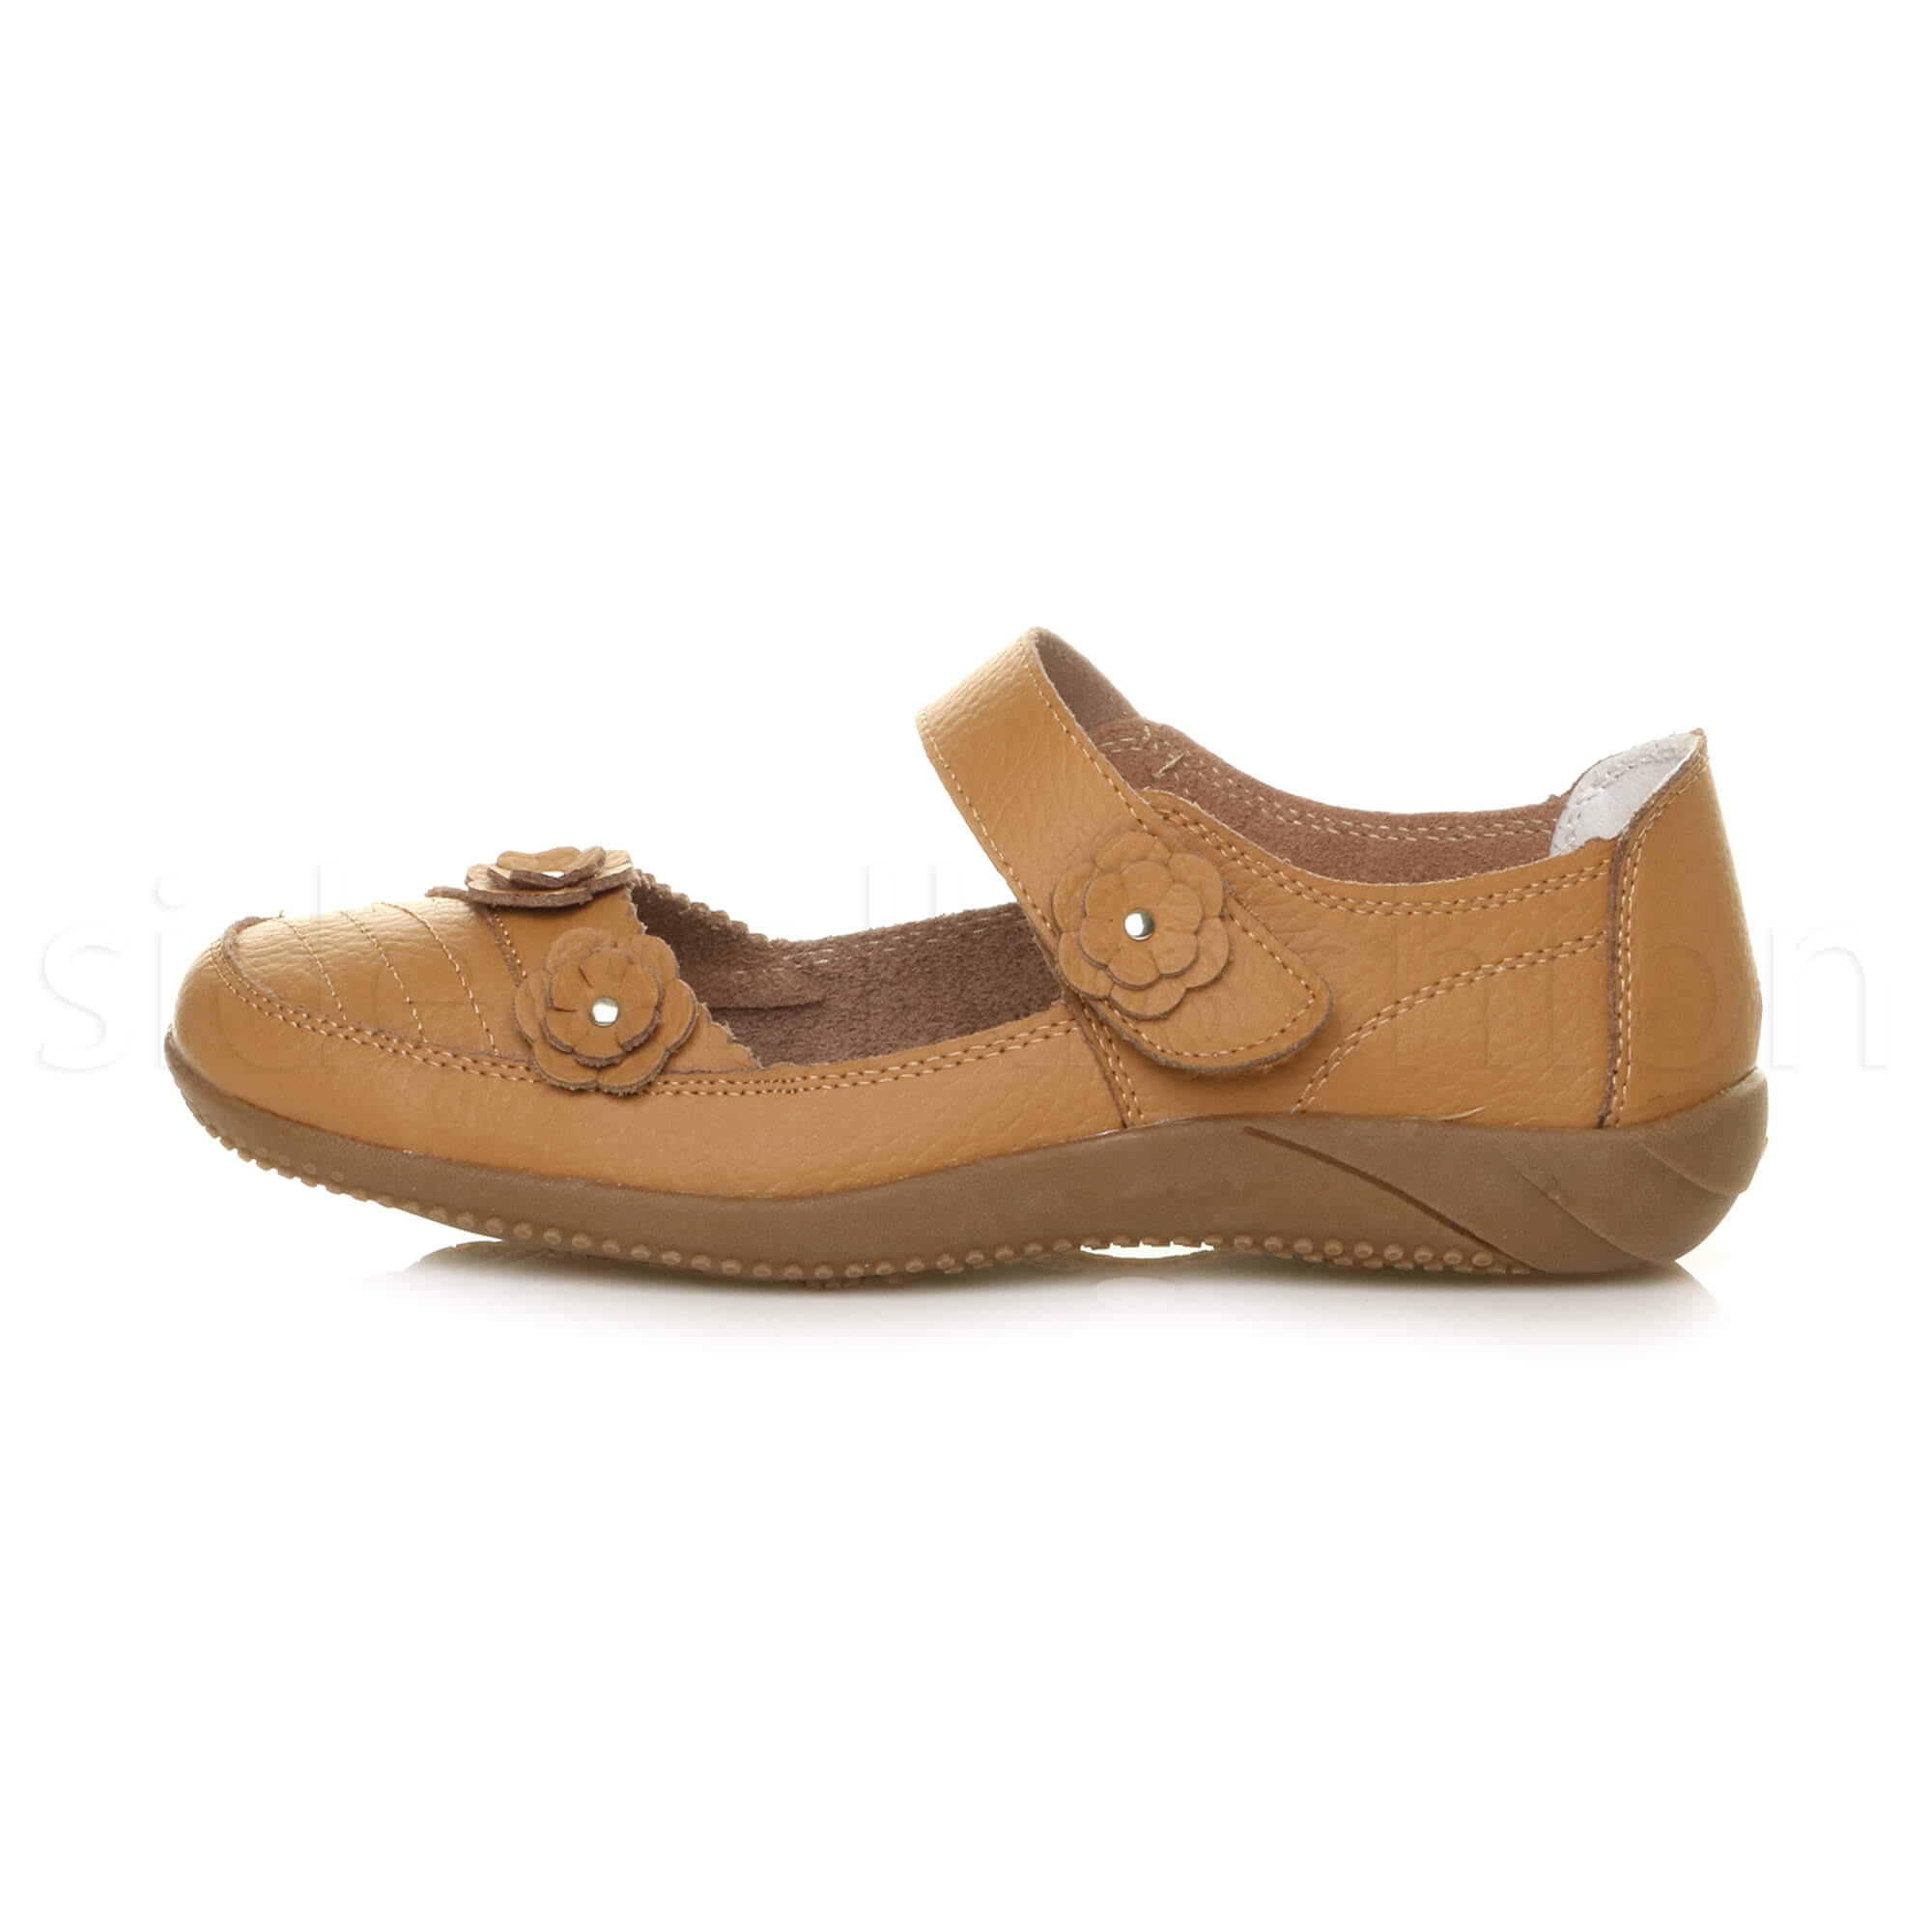 Womens-ladies-leather-comfort-walking-casual-sandals-mary-jane-strap-shoes-size thumbnail 18